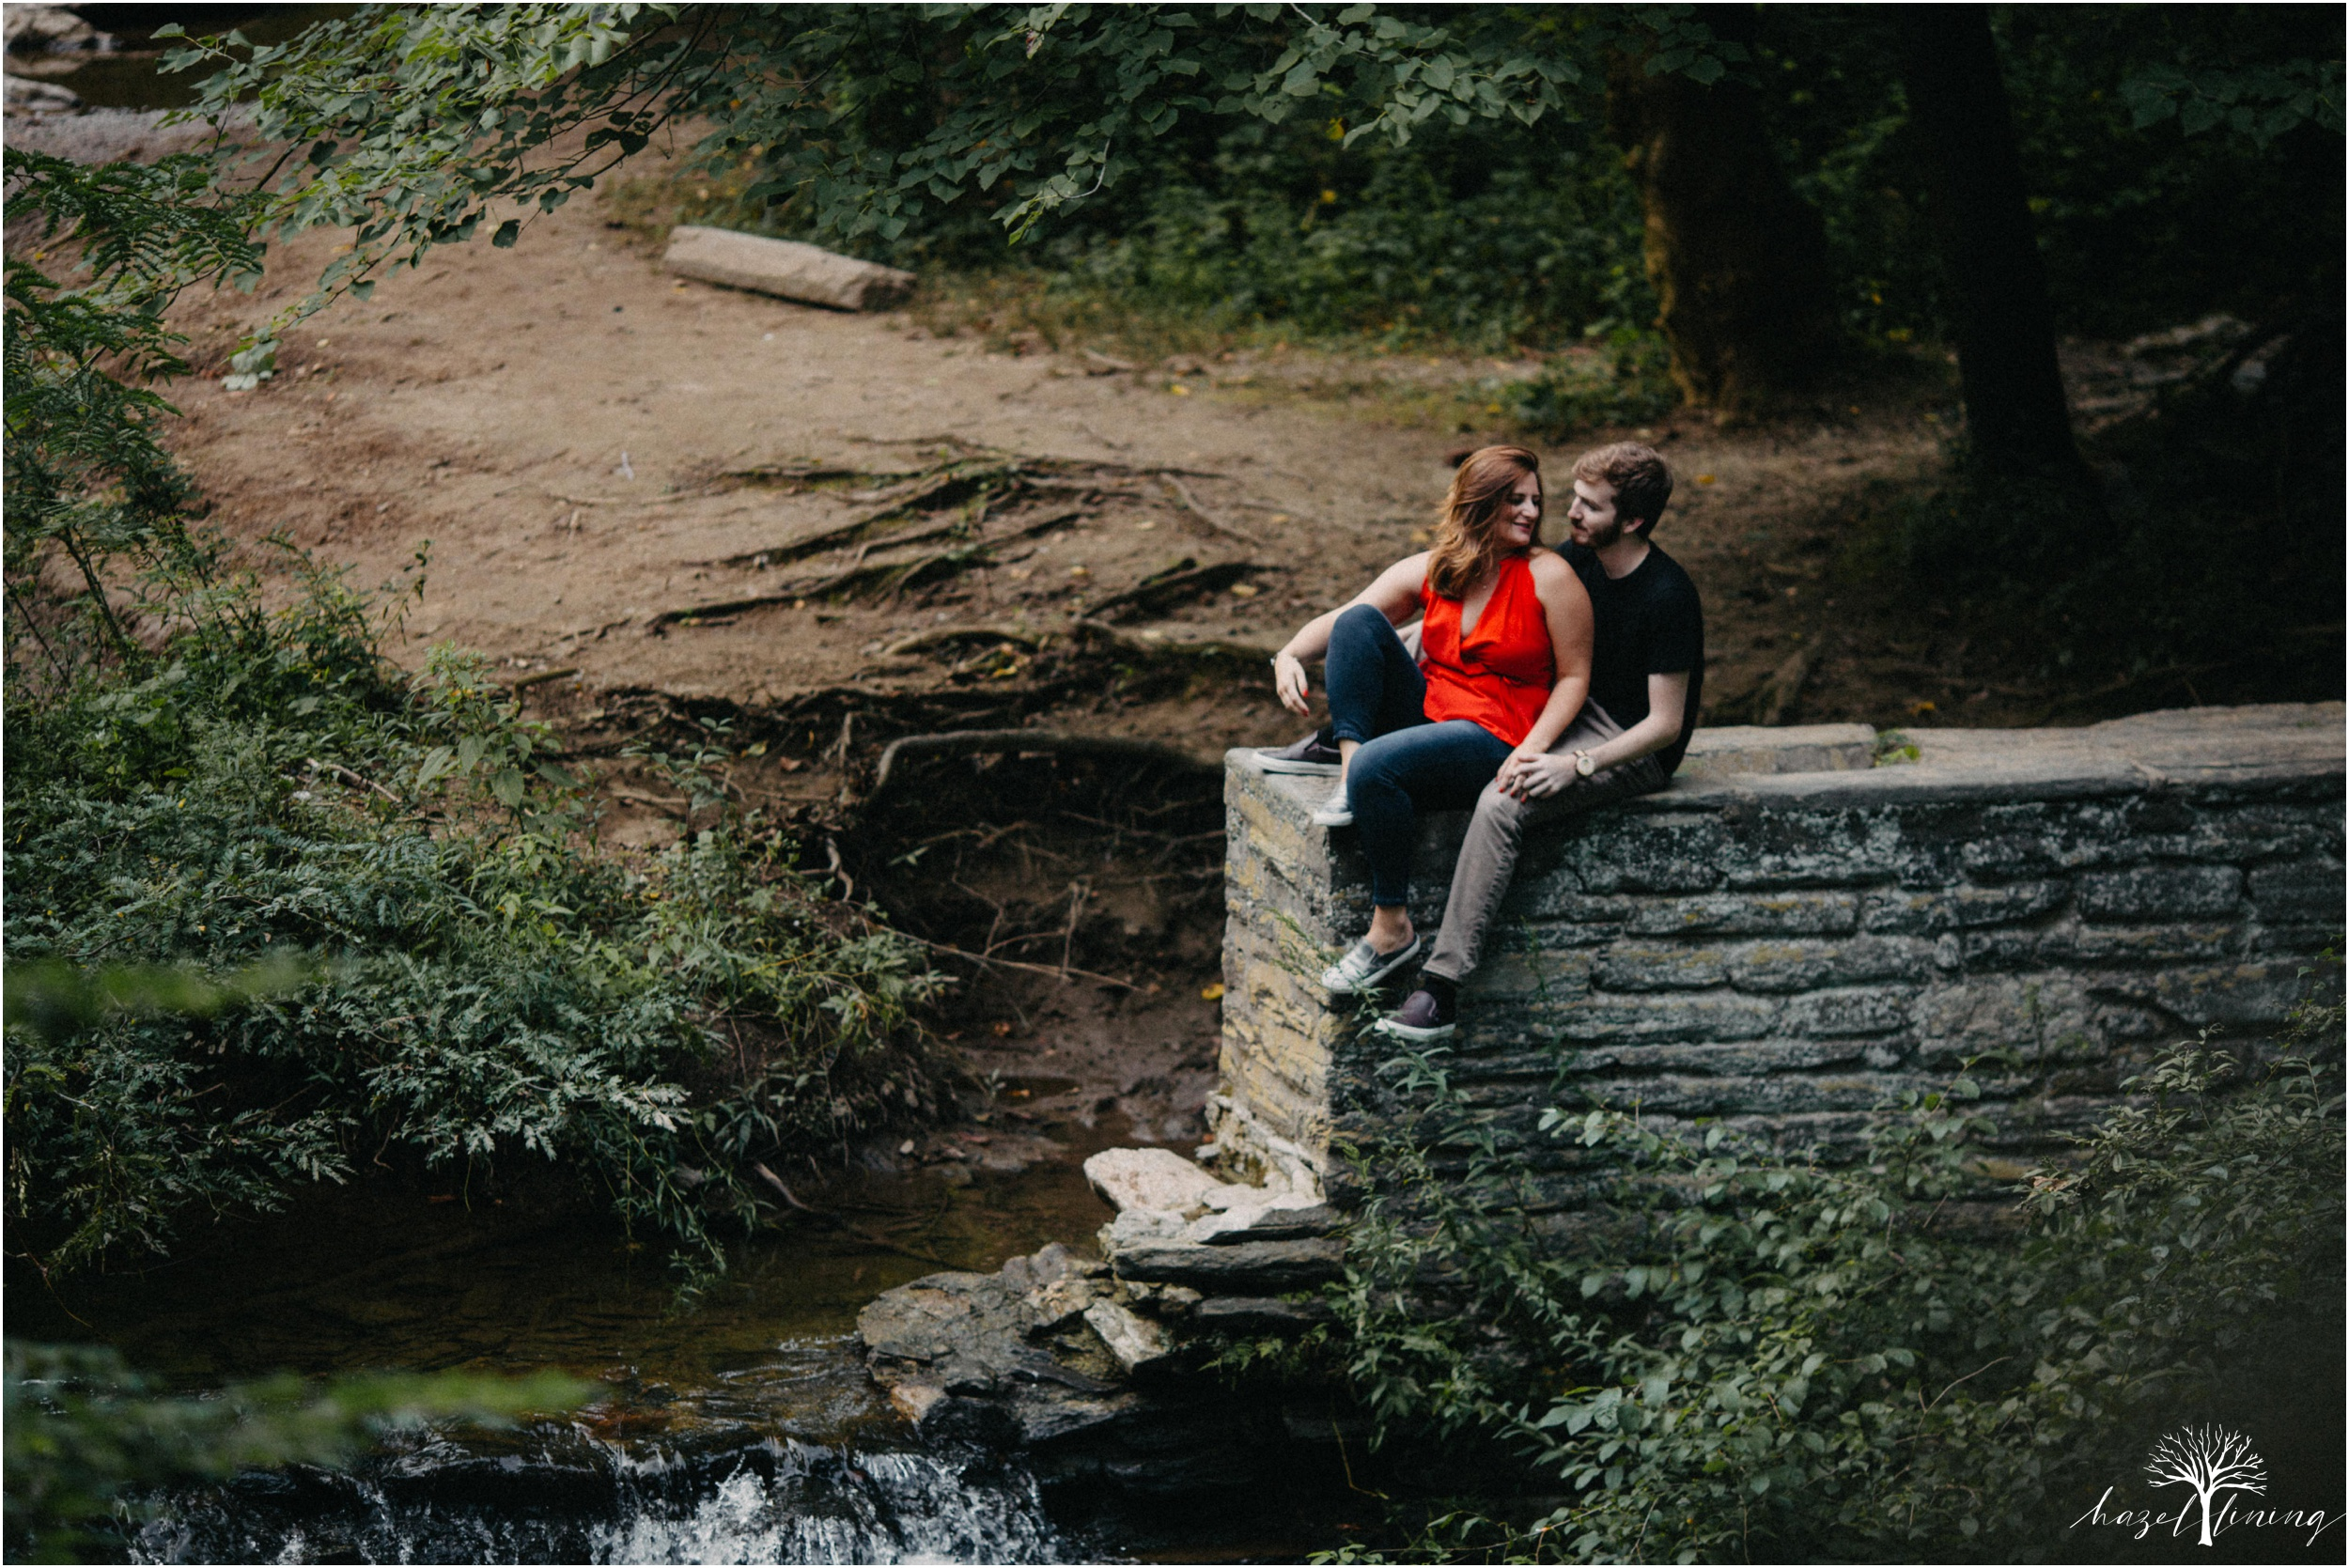 paige-kochey-chris-graham-valley-green-wissahickon-park-philadelphia-summer-engagement-session-hazel-lining-photography-destination-elopement-wedding-engagement-photography_0047.jpg